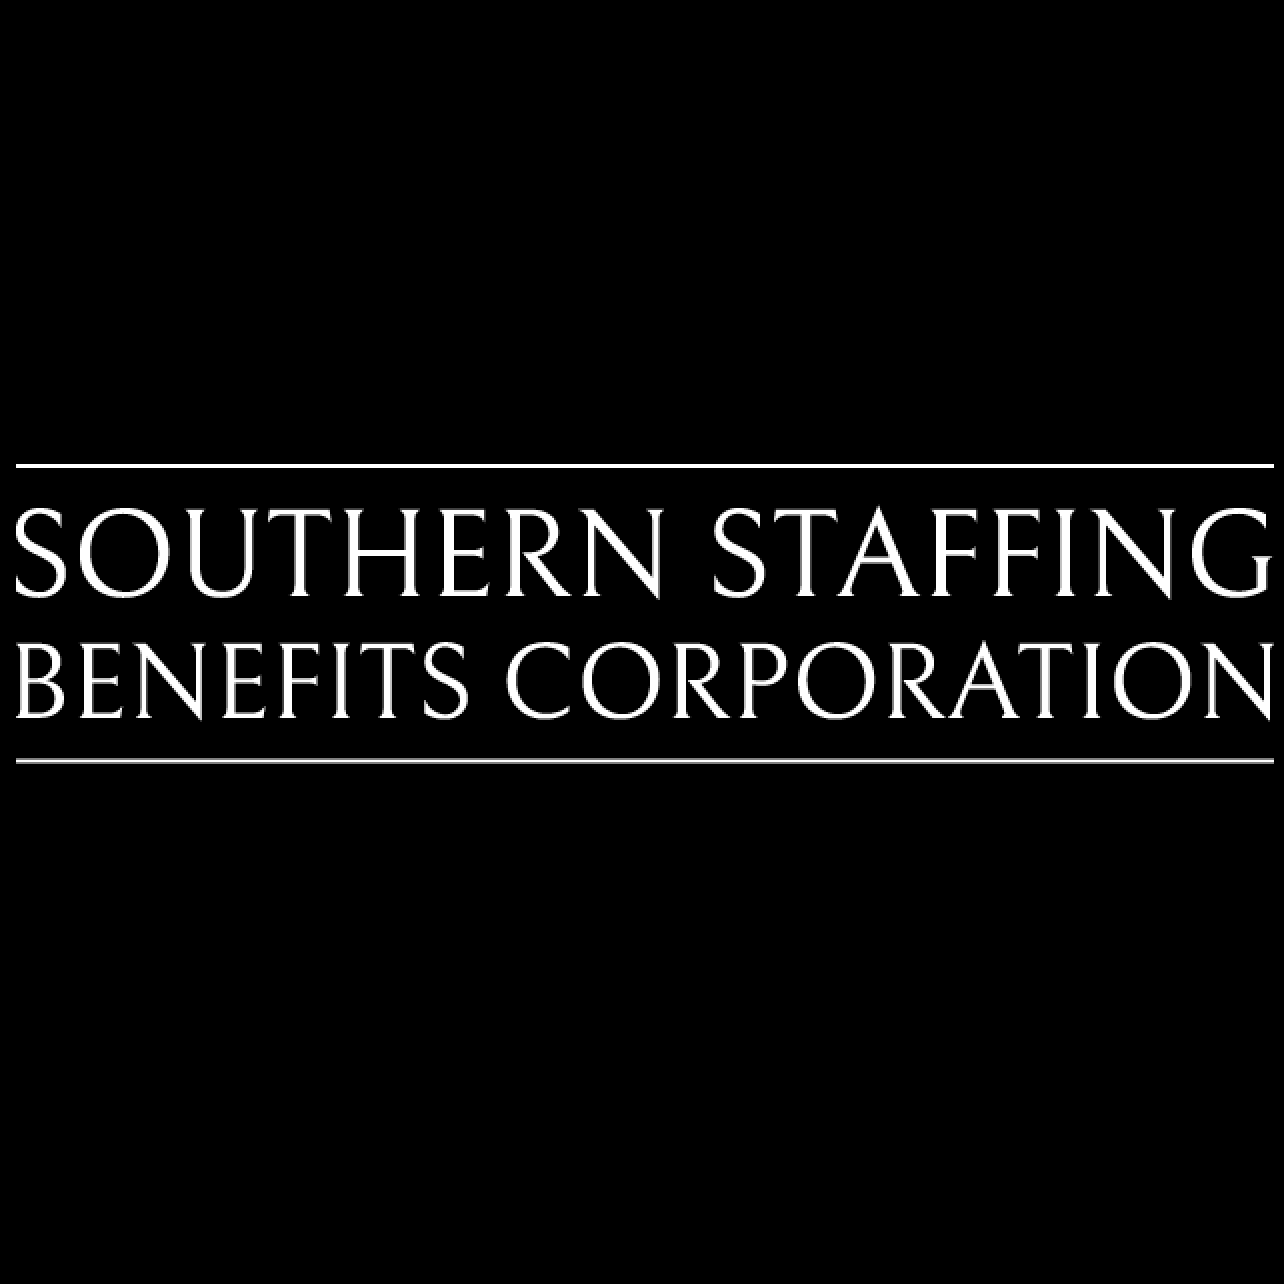 Southern Staffing Benefits Corporation